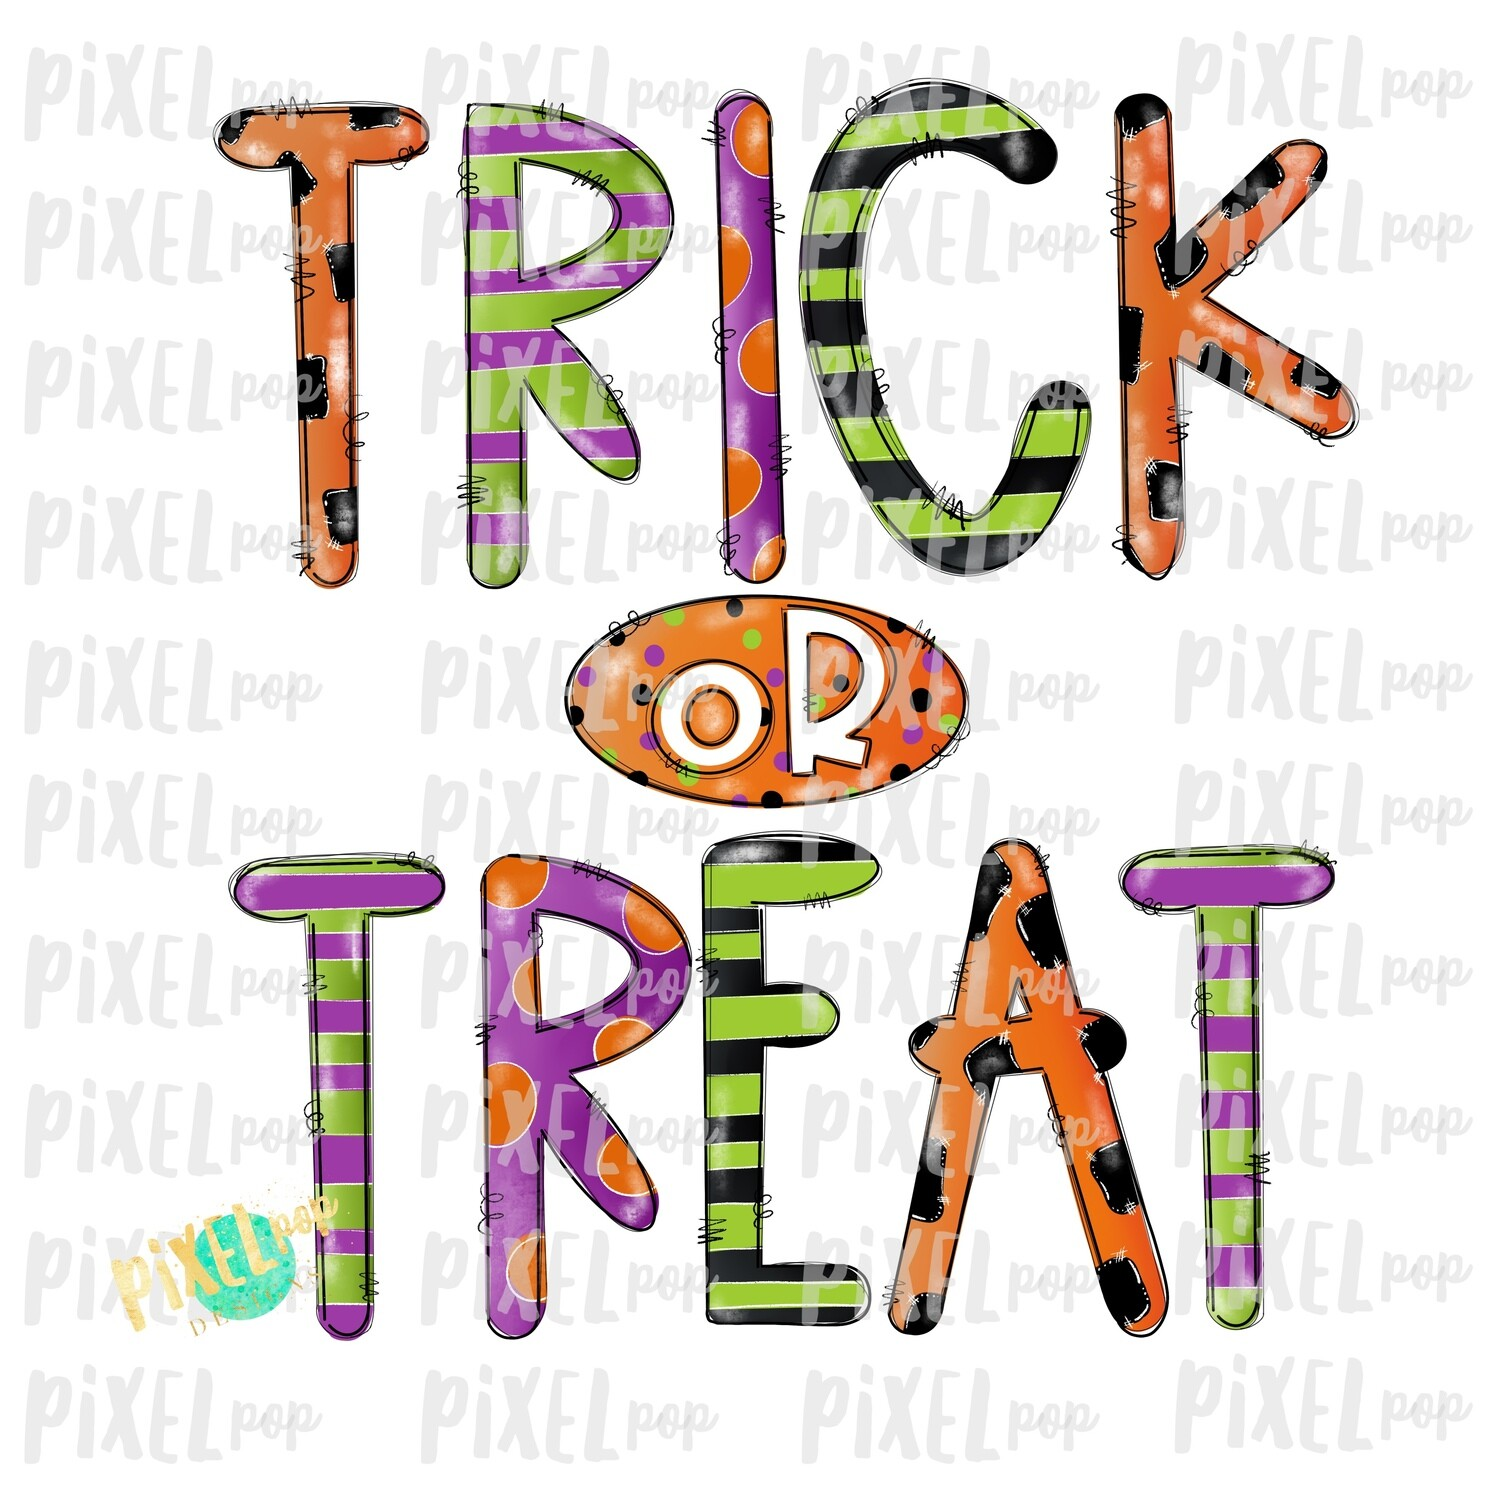 Distressed Trick or Treat Halloween Sublimation PNG | Hand Drawn Art Design | Sublimation PNG | Digital Download | Printable Artwork | Art